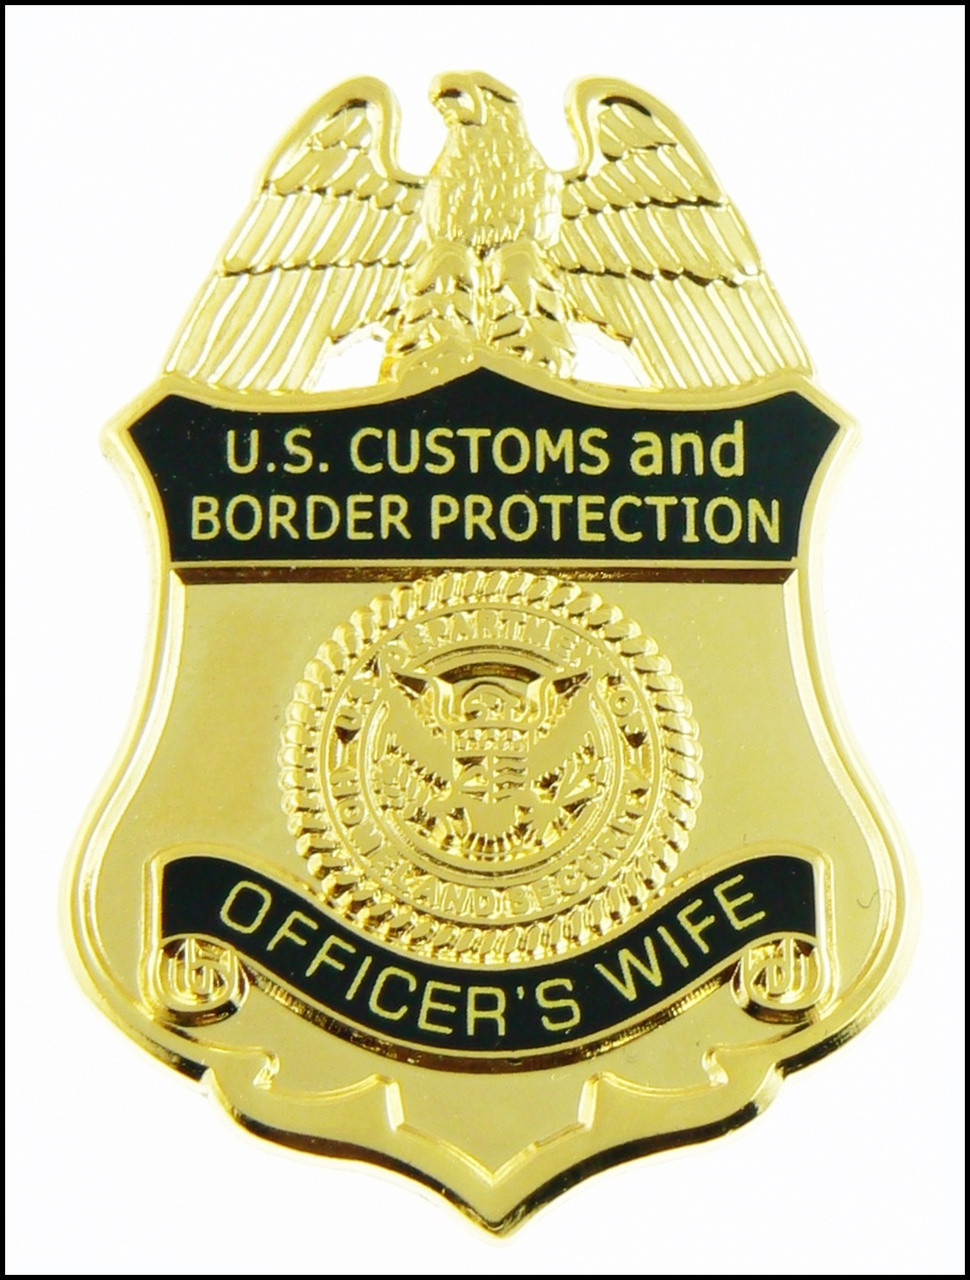 Customs and Border Protection Officers Wife Mini Badge Magnet